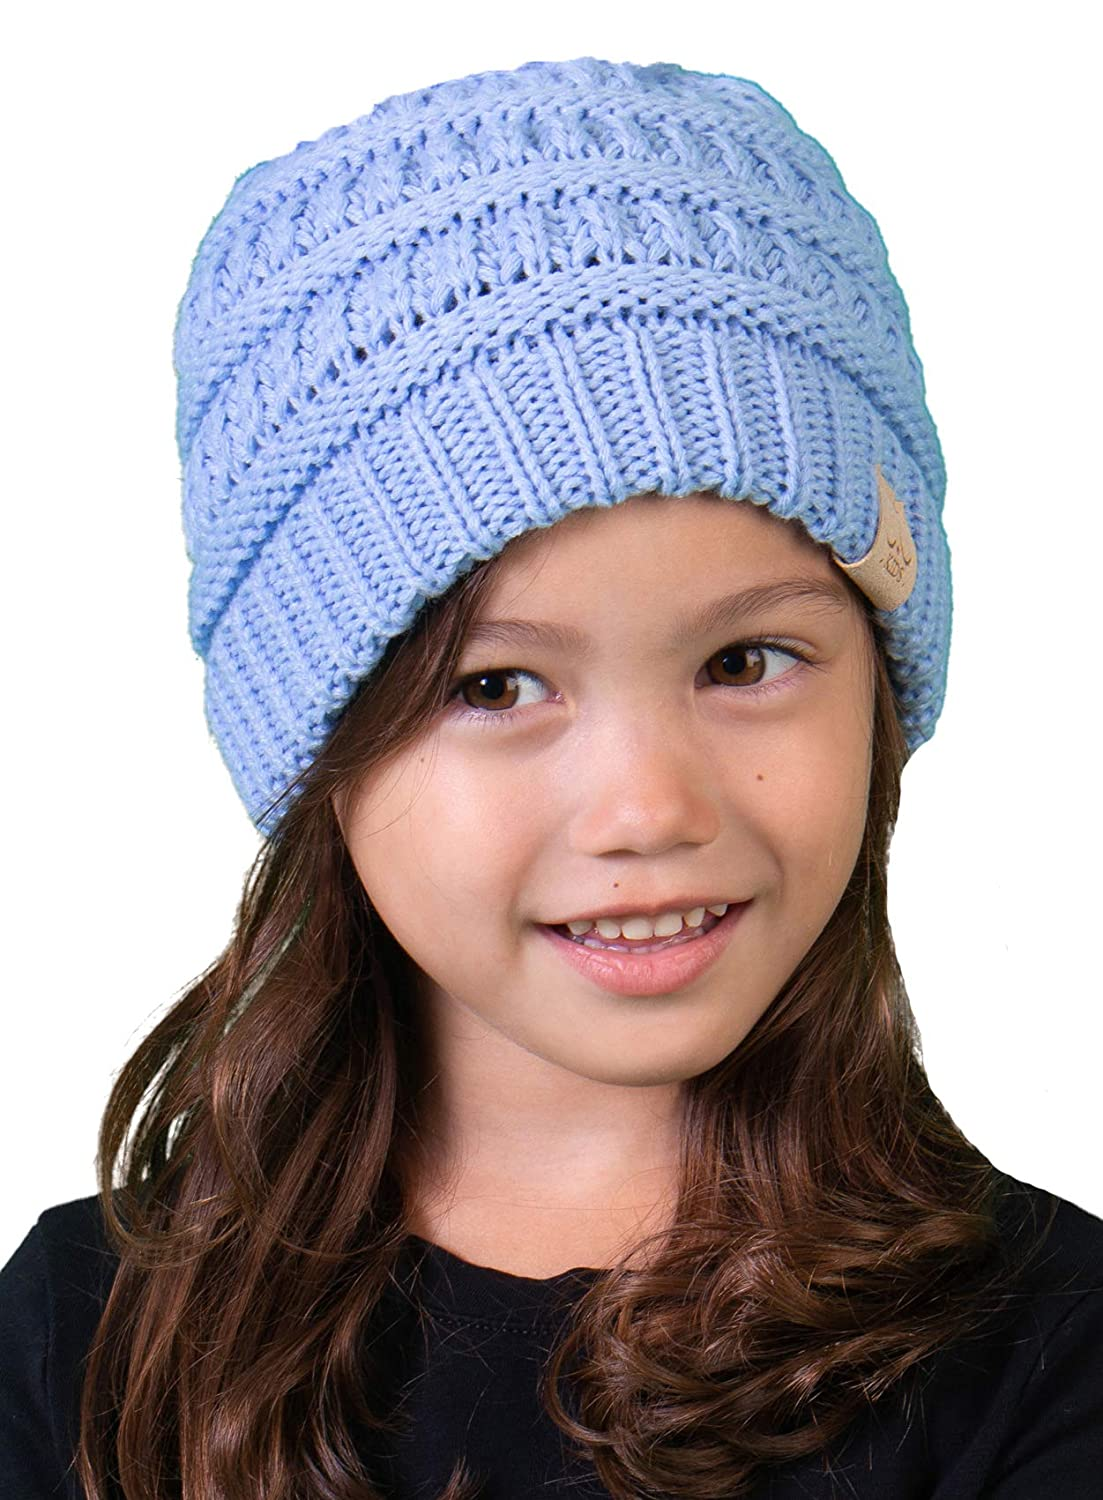 663d94b0d85 Funky Junque CC Kids Baby Toddler Ribbed Knit Children s Winter Hat Beanie  Cap 1 Grey  larger image